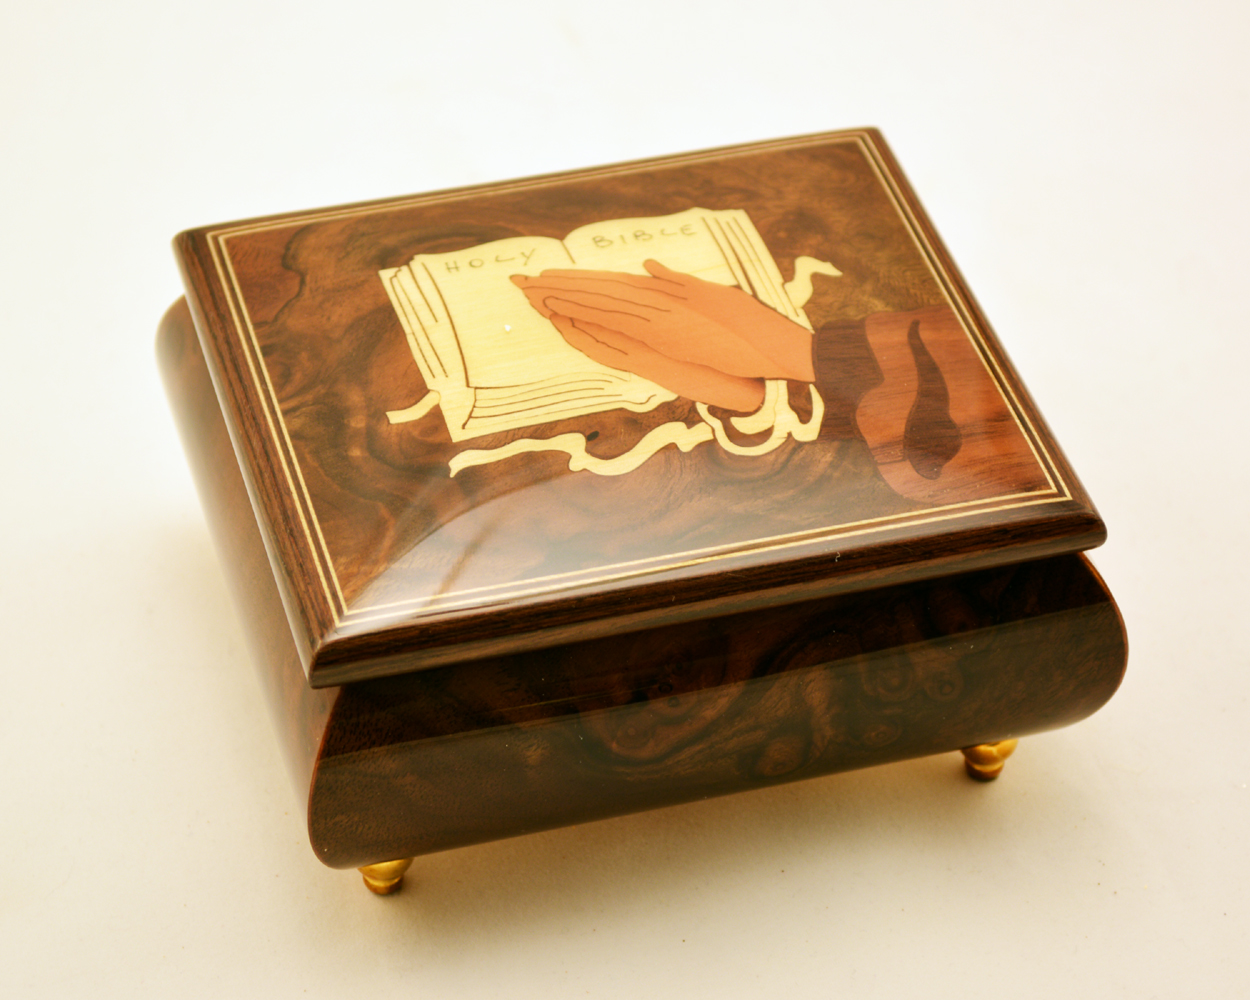 Christian High Gloss Burl Elm Music Box w/ Bible Prayer Inlay